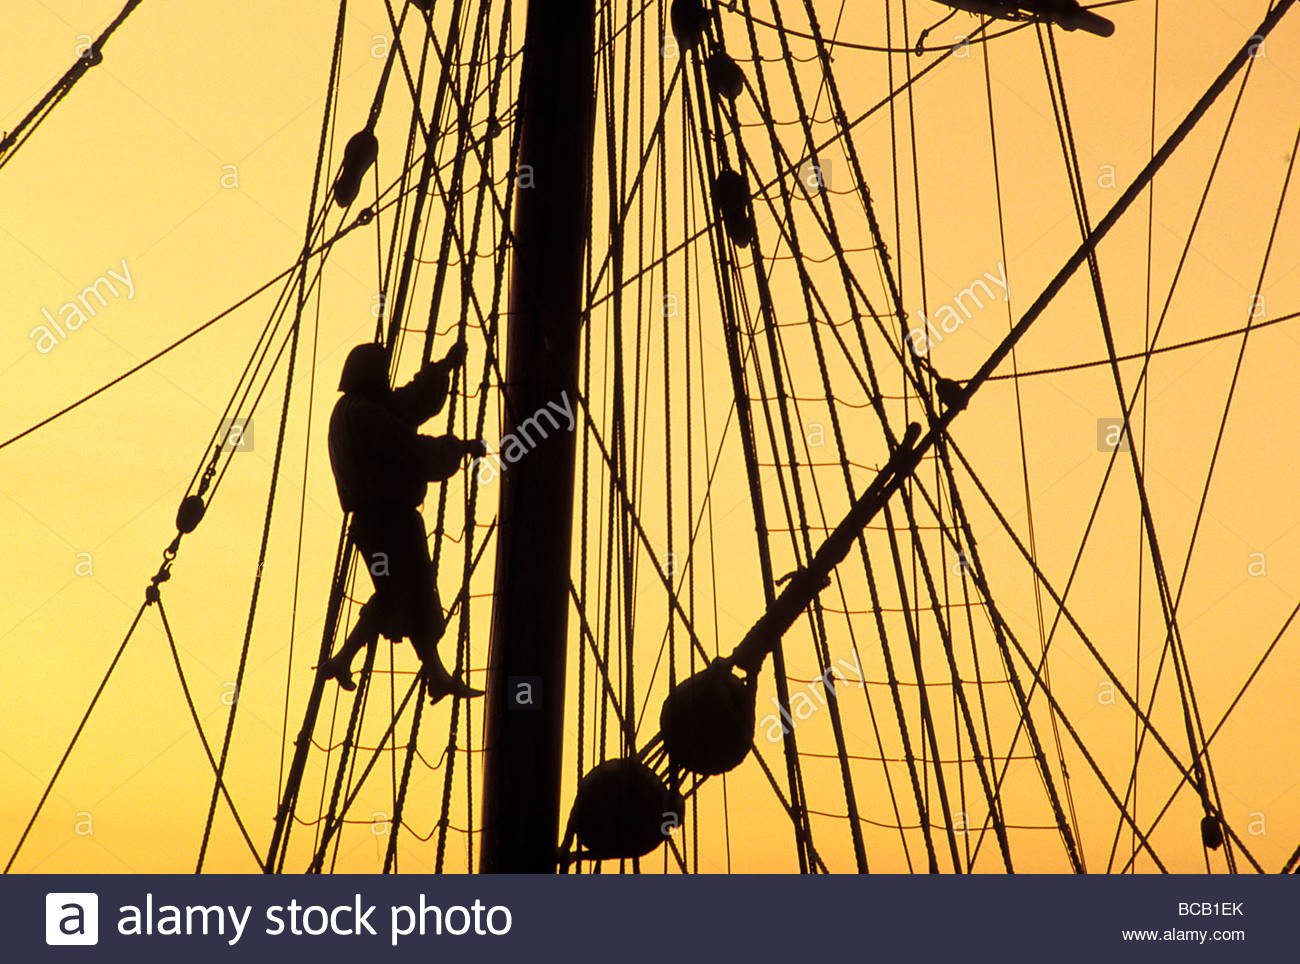 A re-enactors climbs up a reconstructed seventeenth century ship in Jamestown Settlement, Virginia. - Stock Image